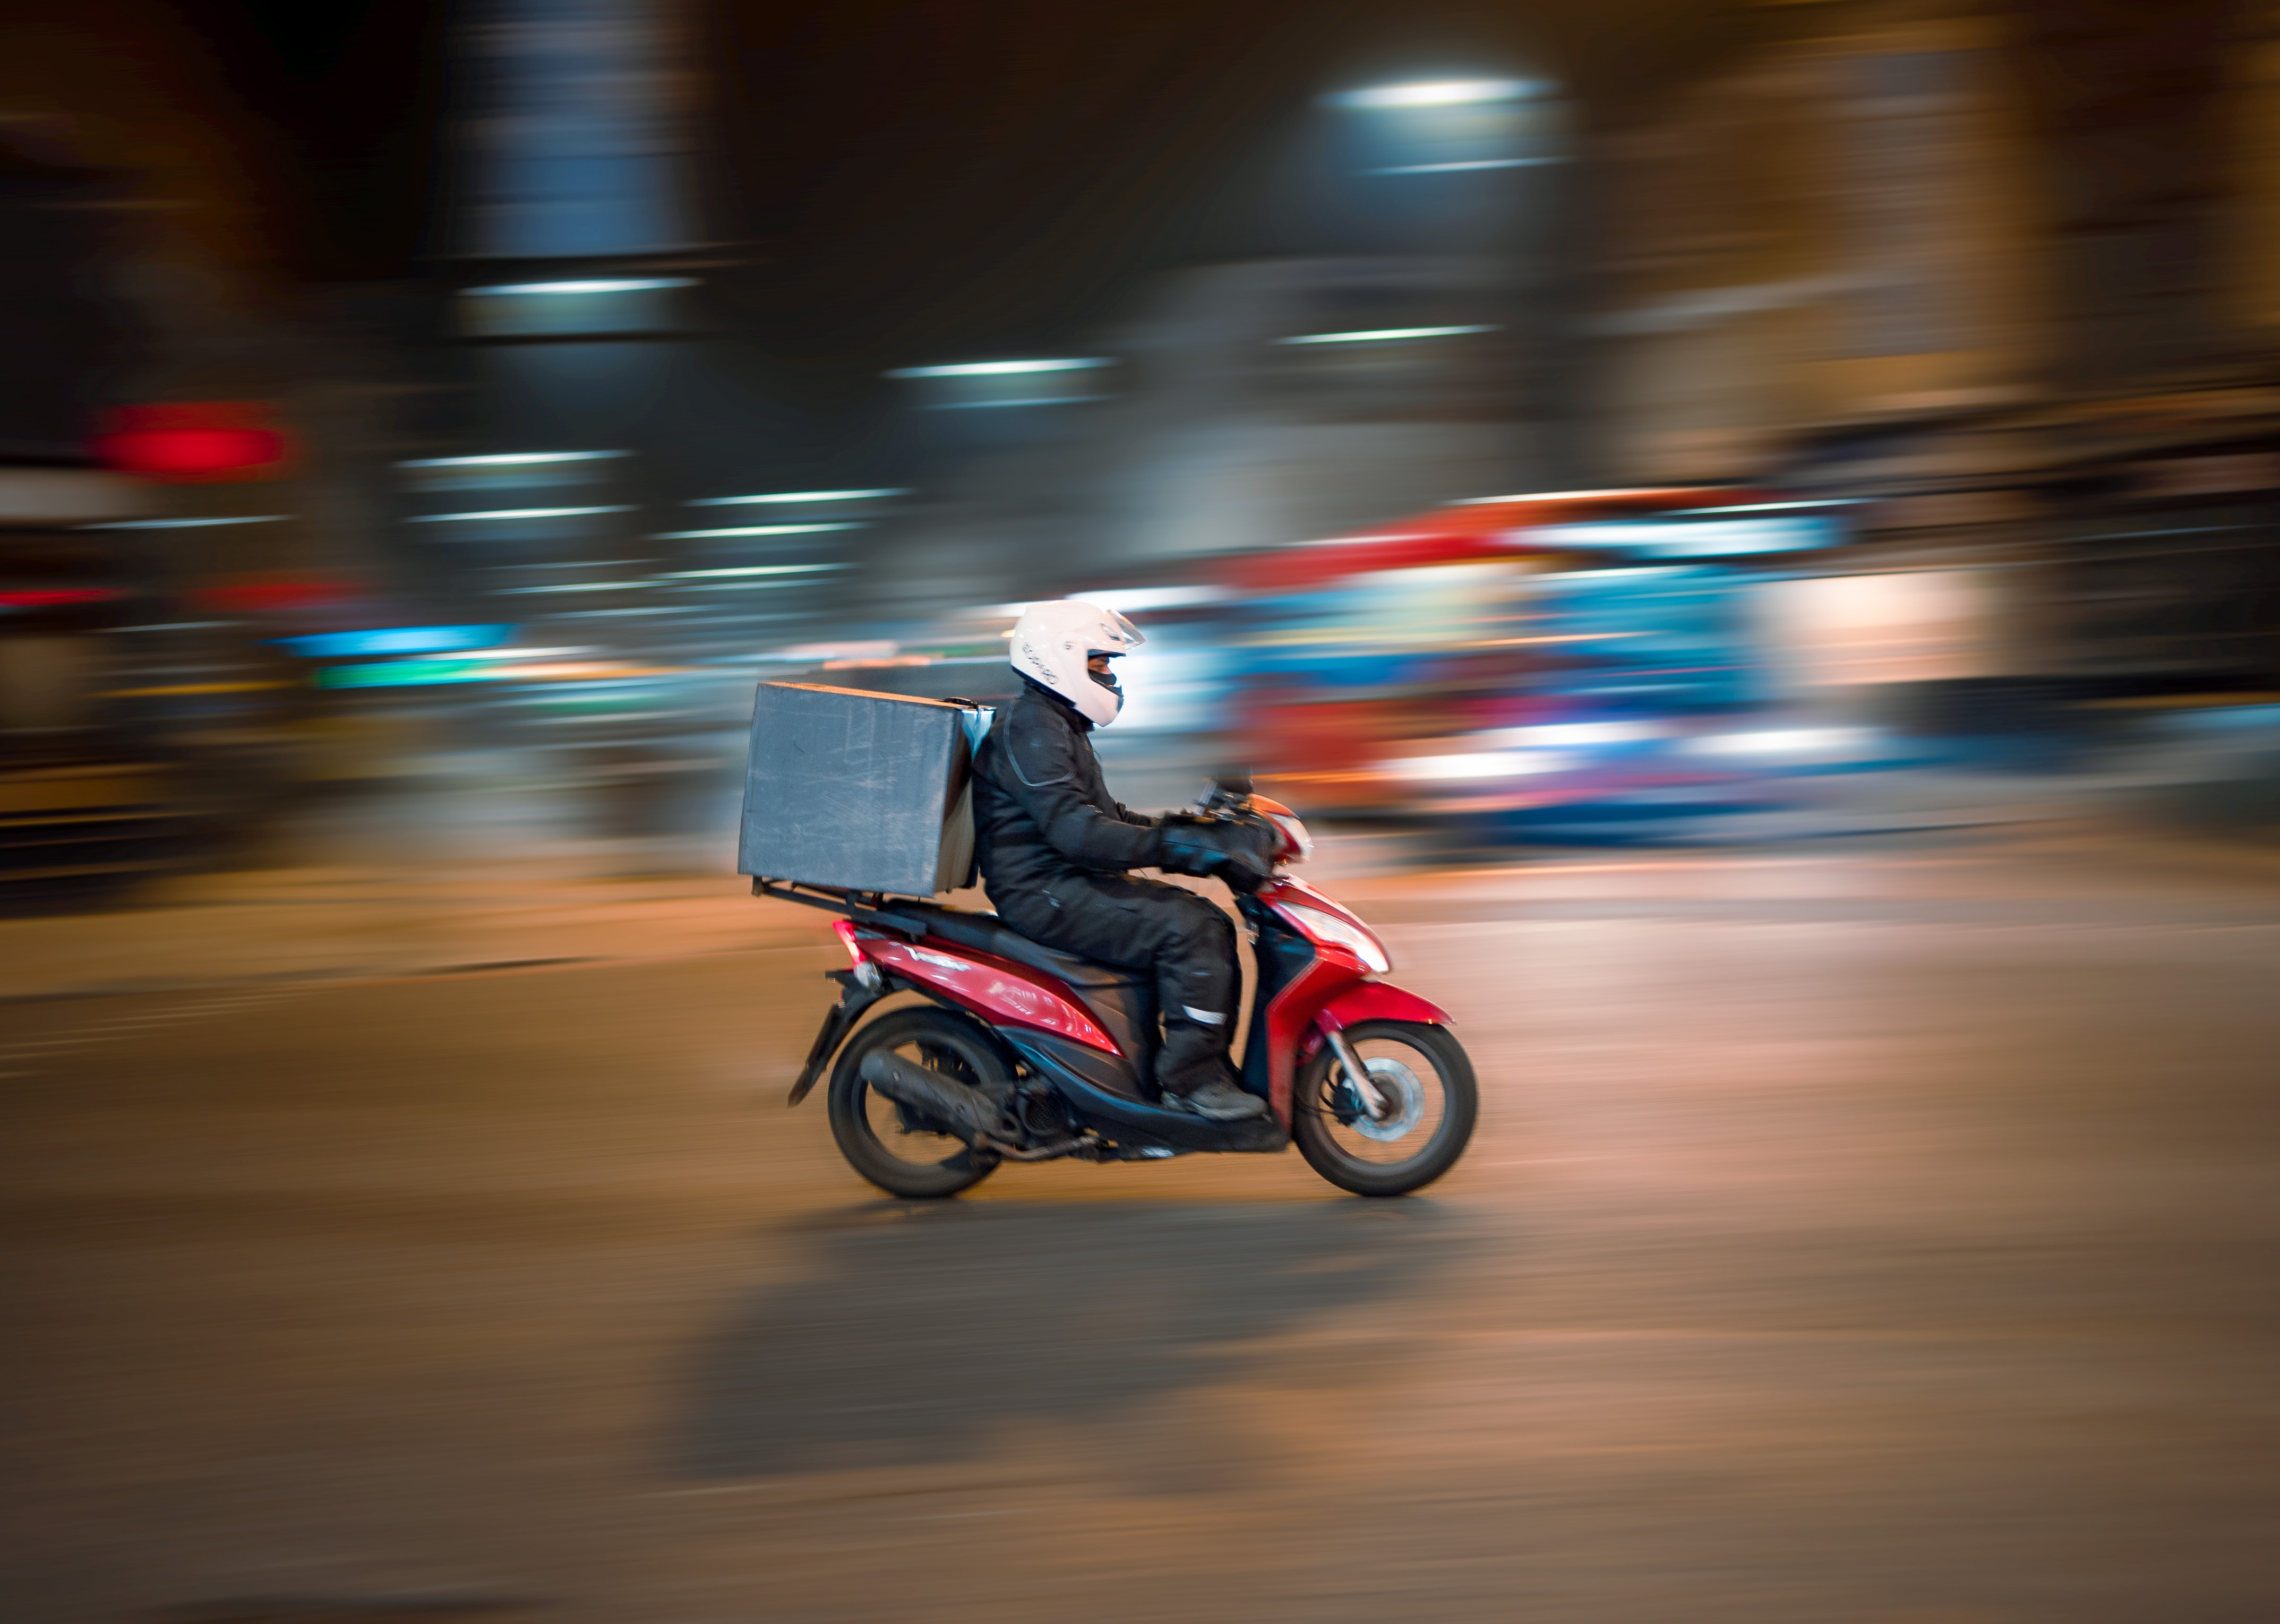 Should You Use Third-Party Restaurant Delivery Services ... or Start Your Own?